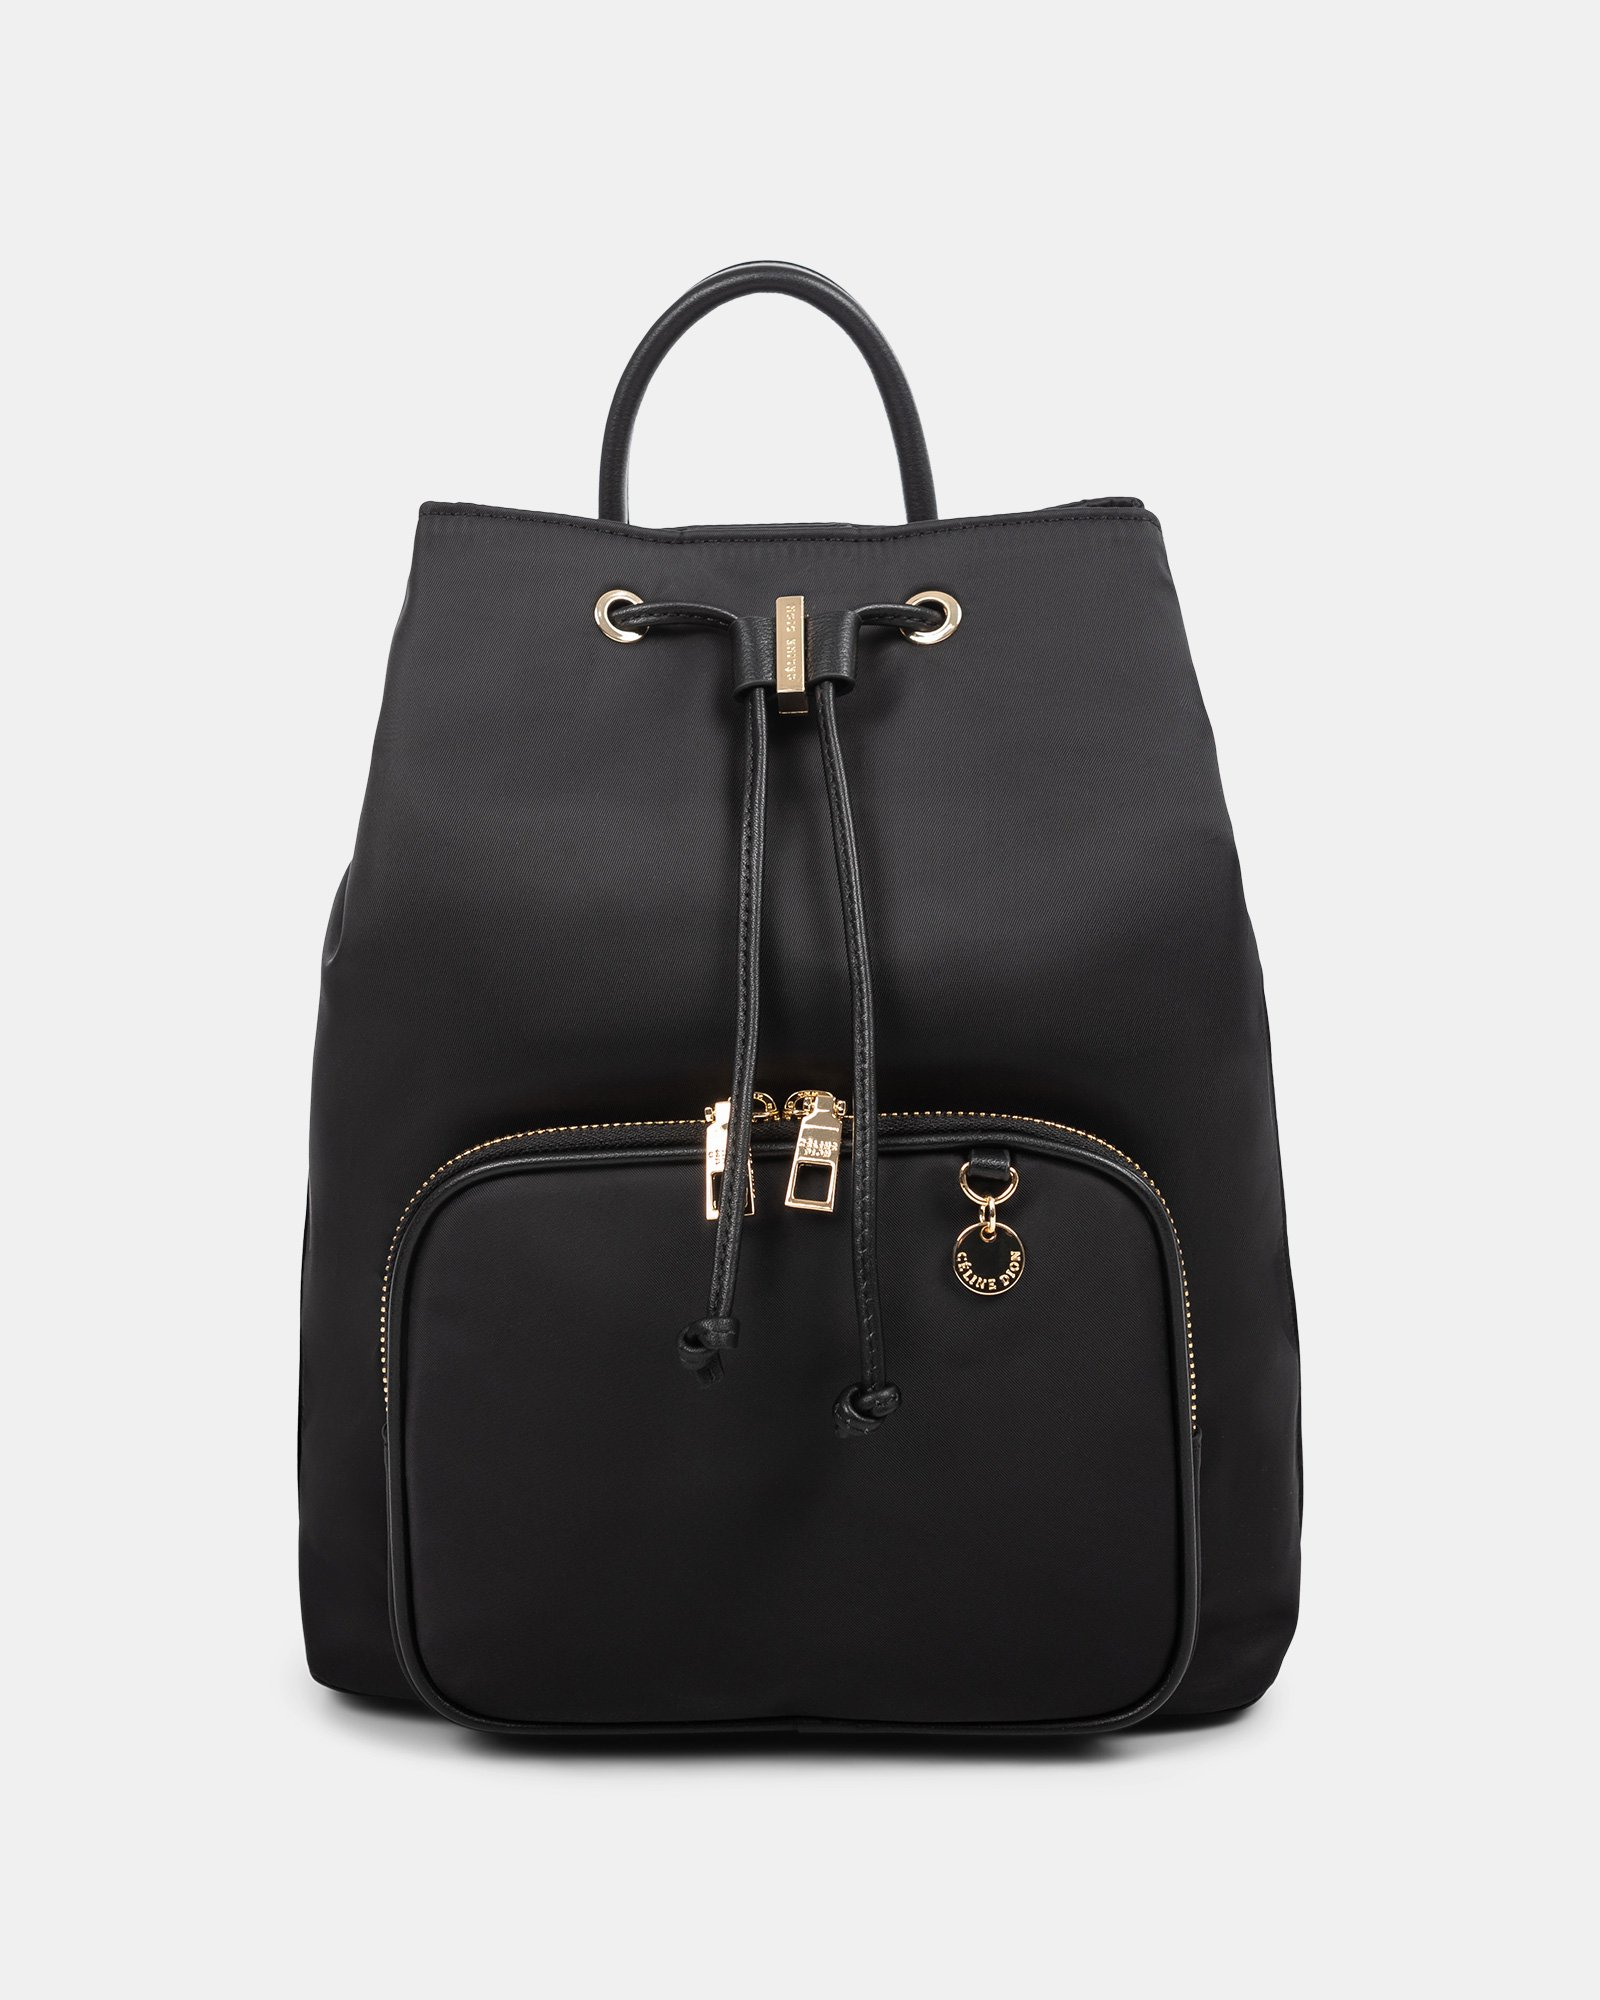 NYLON - Convertible backpack 2 in 1 WITH RFID PROTECTION - BLACK - Céline Dion - Zoom